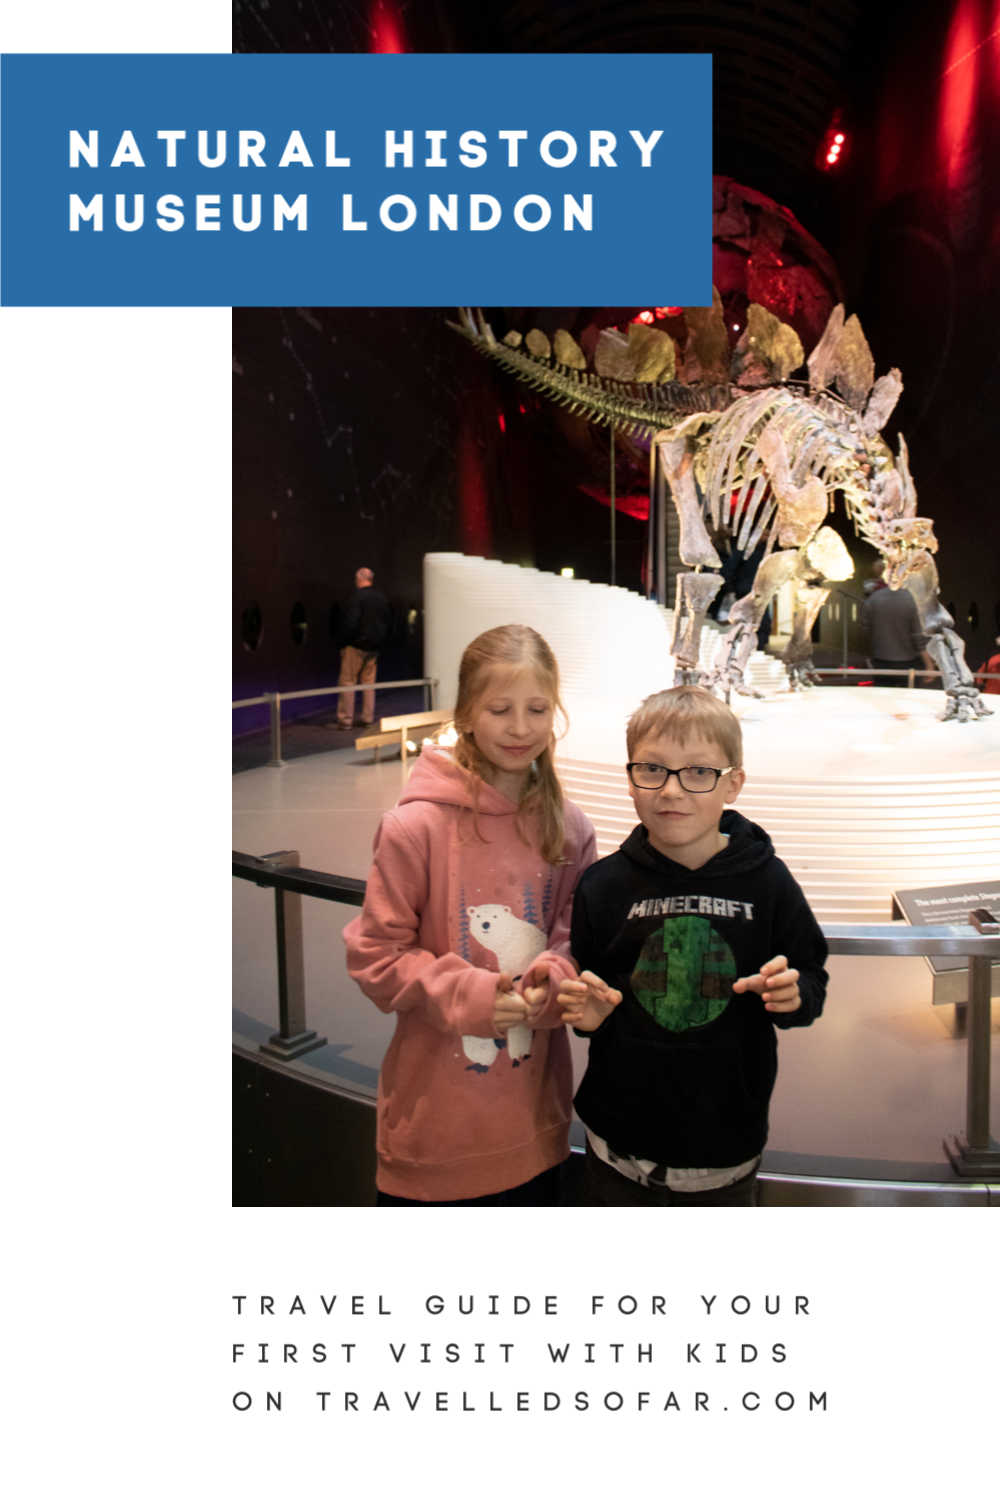 pinnable image for A travel guide for your first visit with kids to the Natural History Museum London